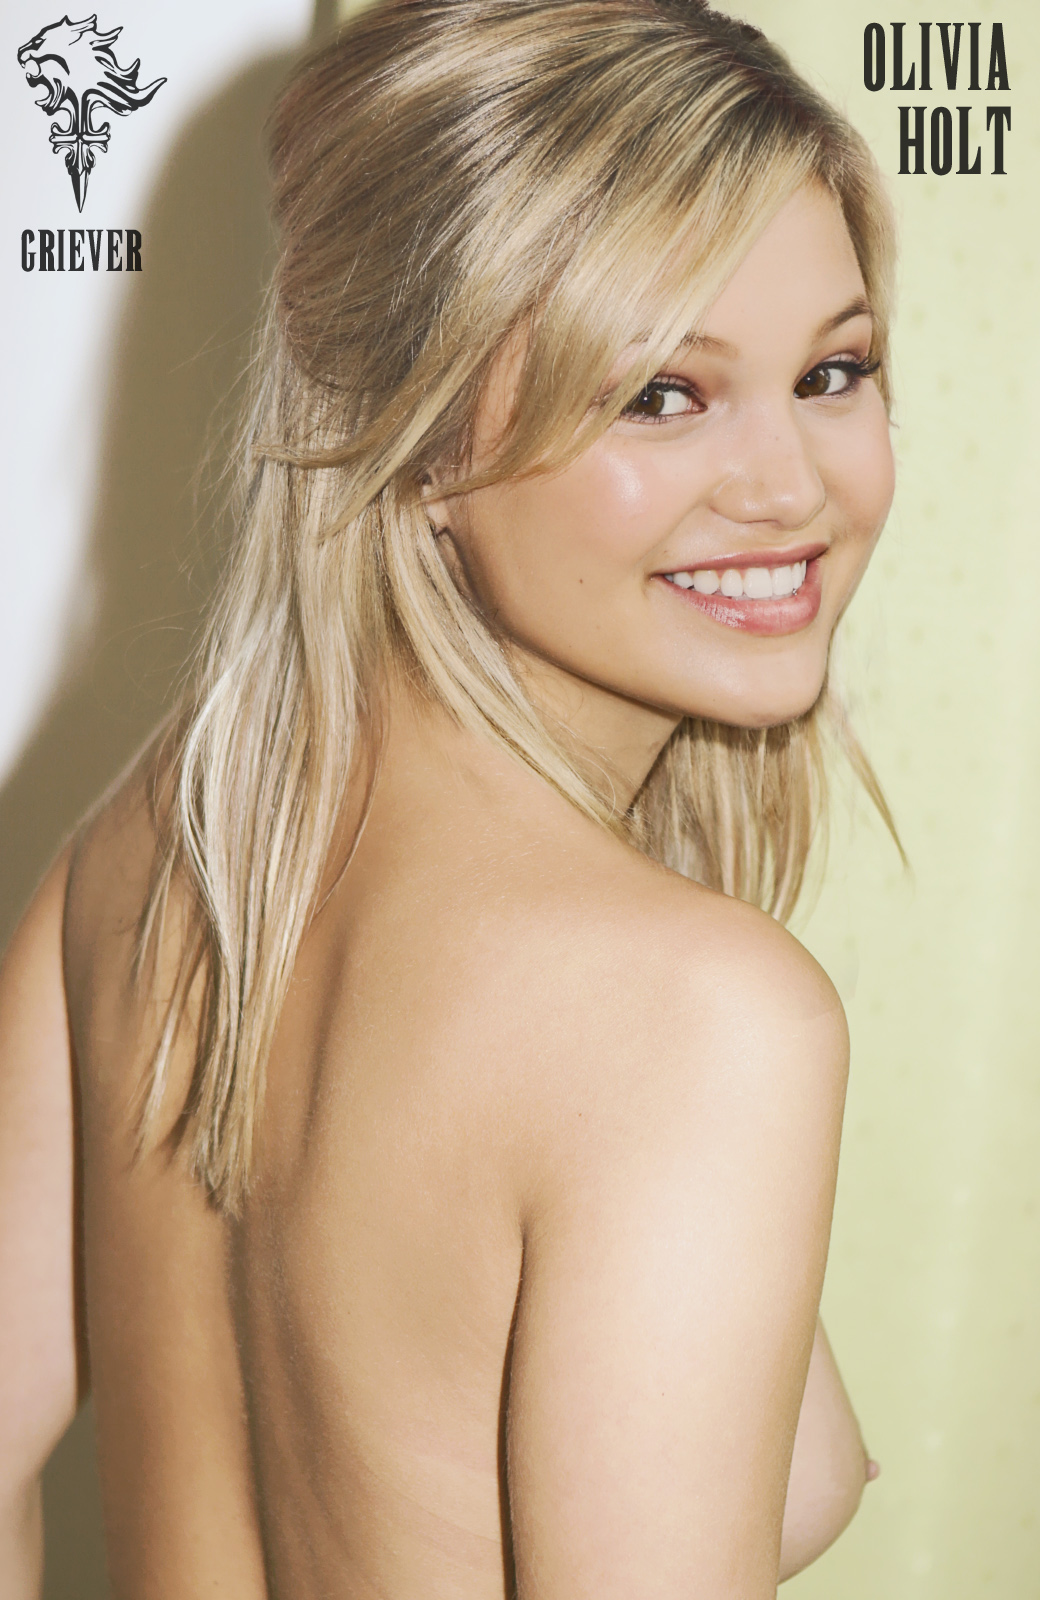 Sorry, that Olivia holt nude fake properties